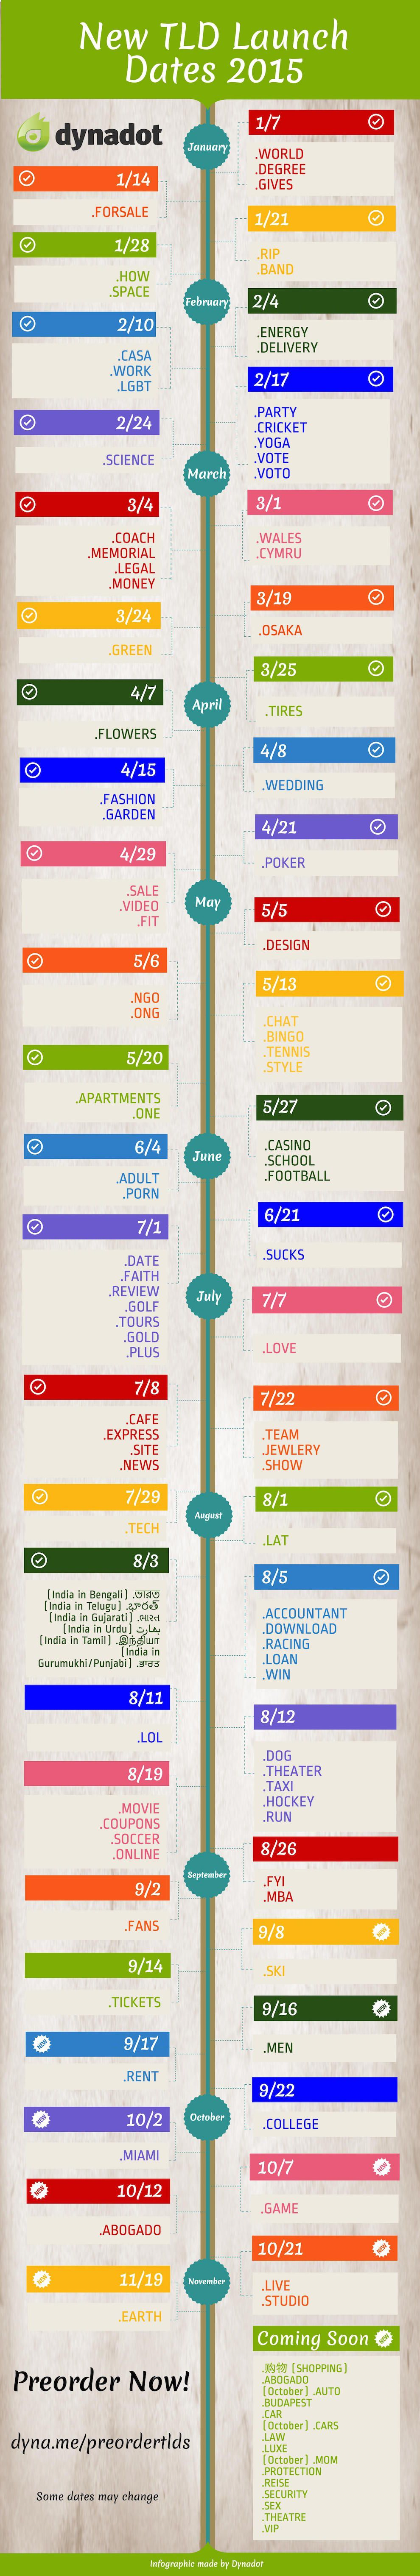 New TLDs in 2015 - New TLD Release Dates - Dynadot TLD Release Dates